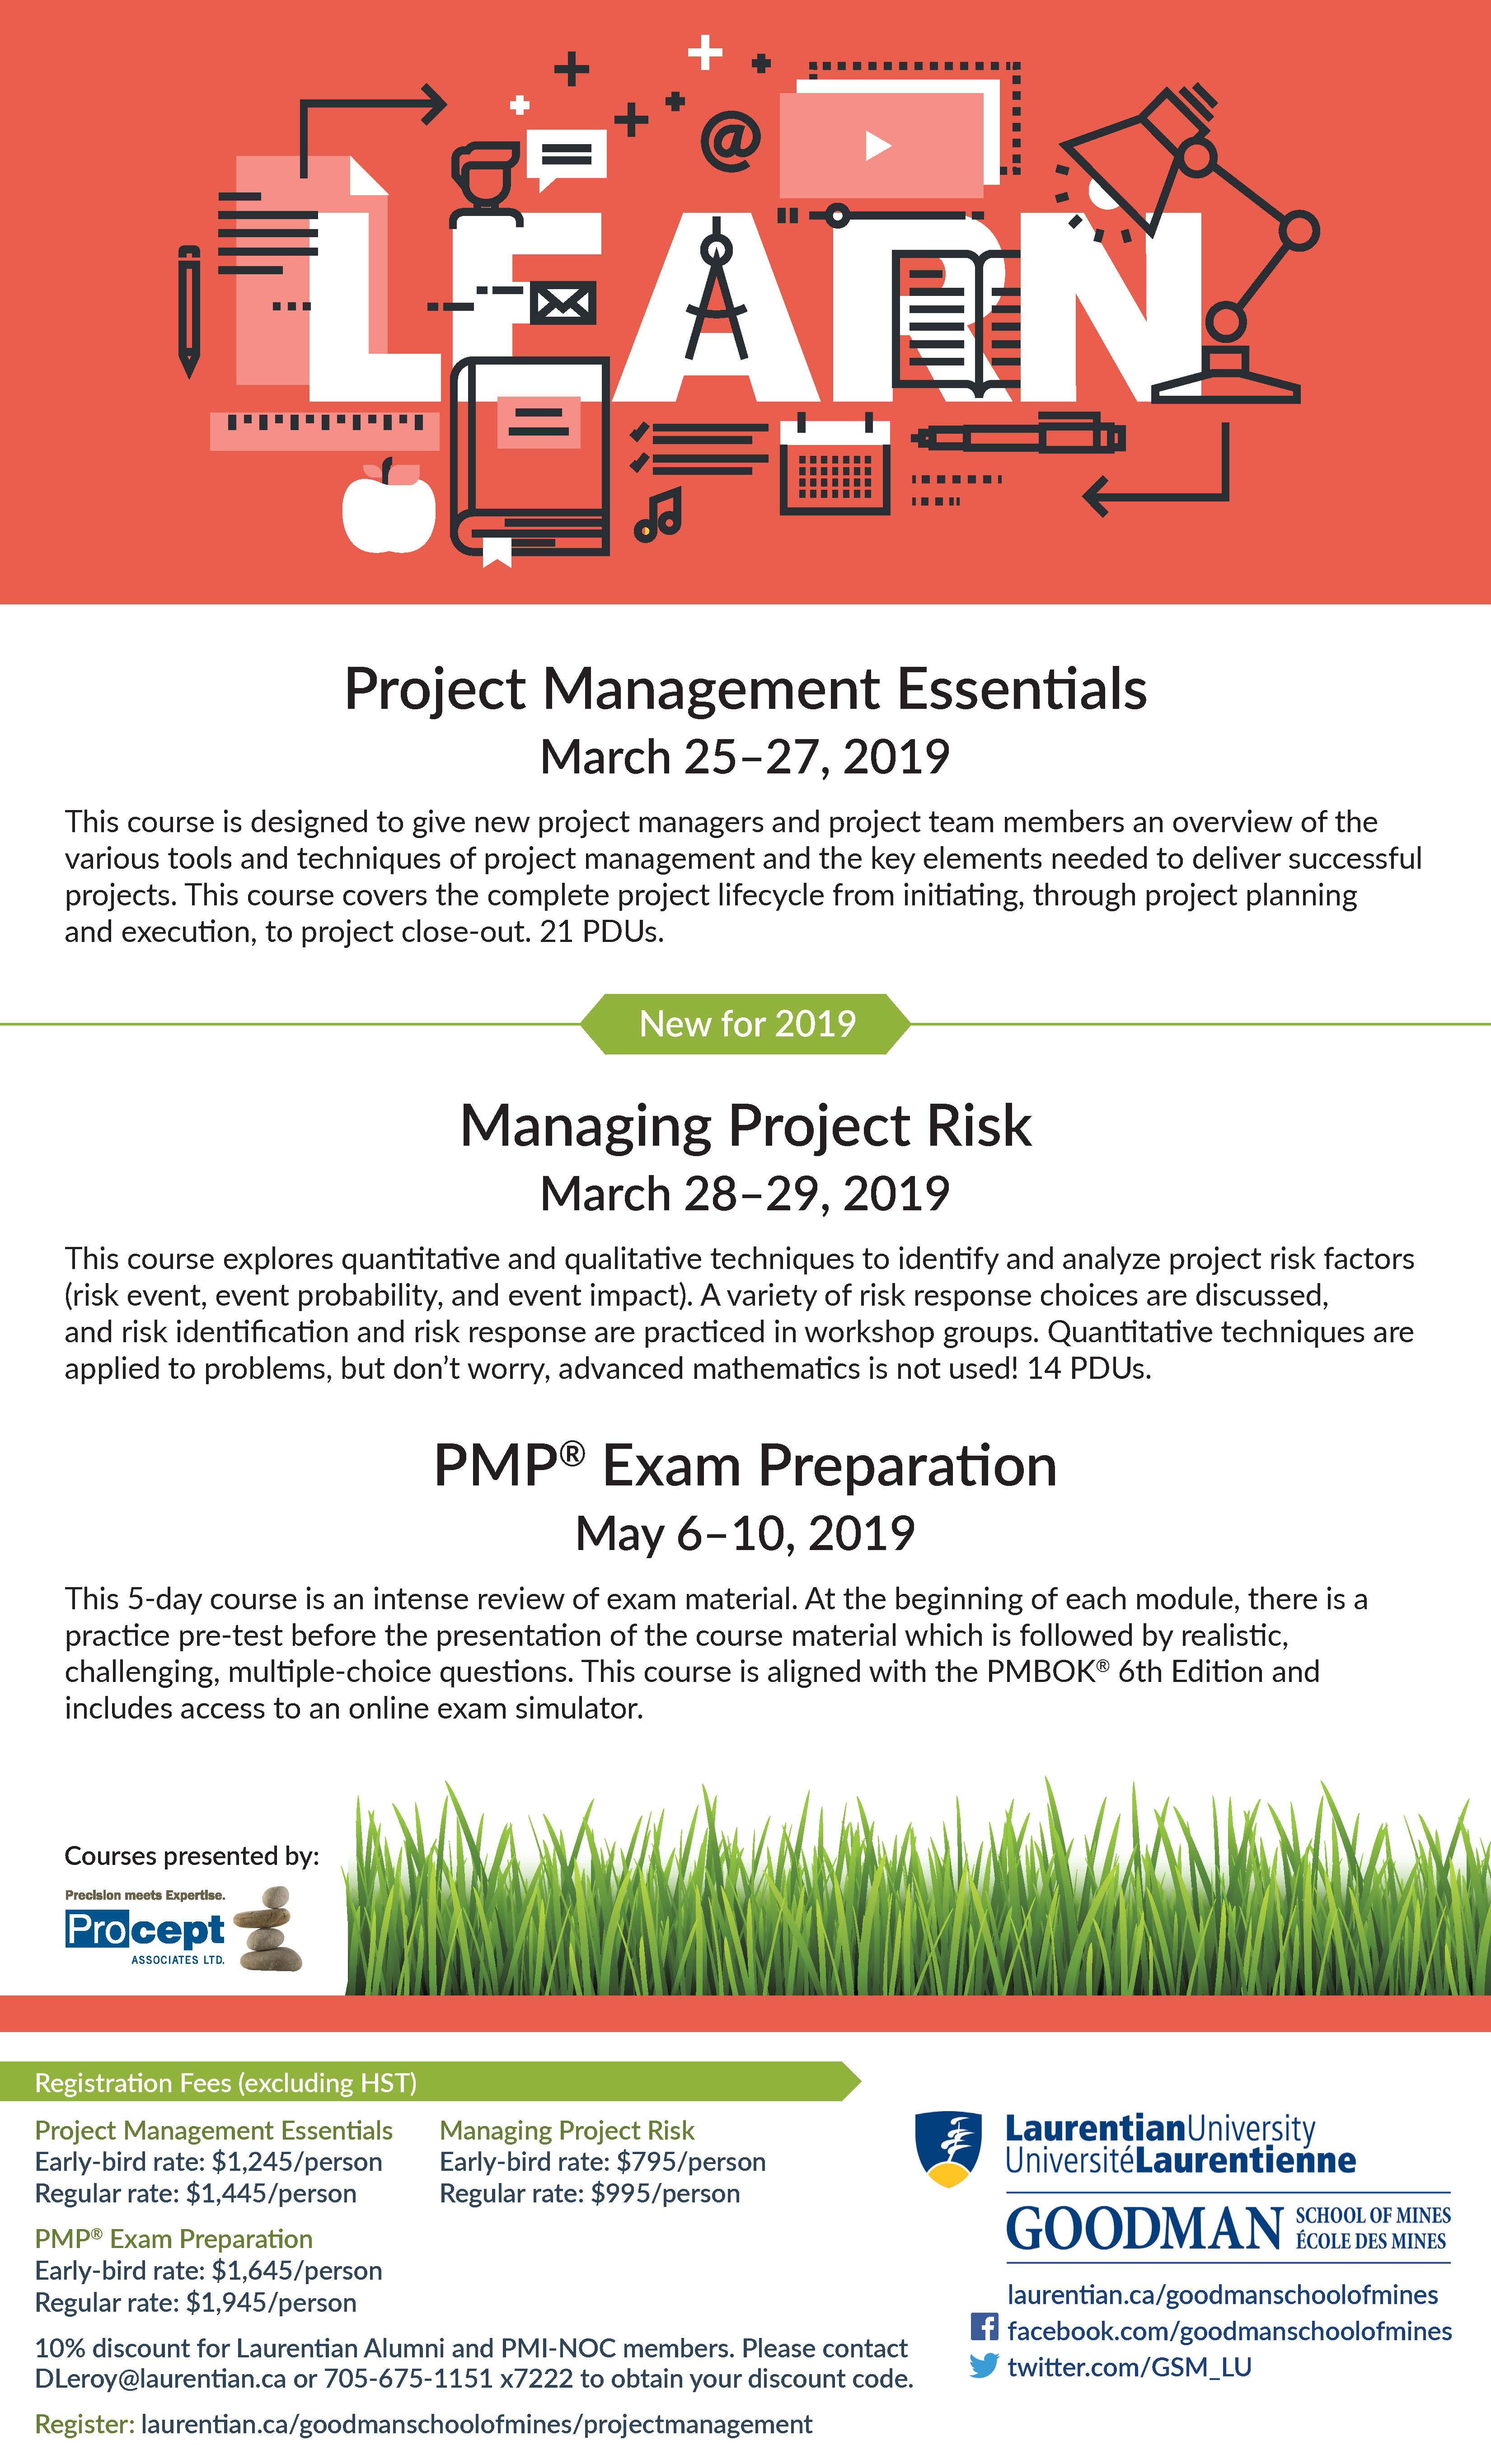 Project Management Course Pmp Exam Preparation Canadian Mining